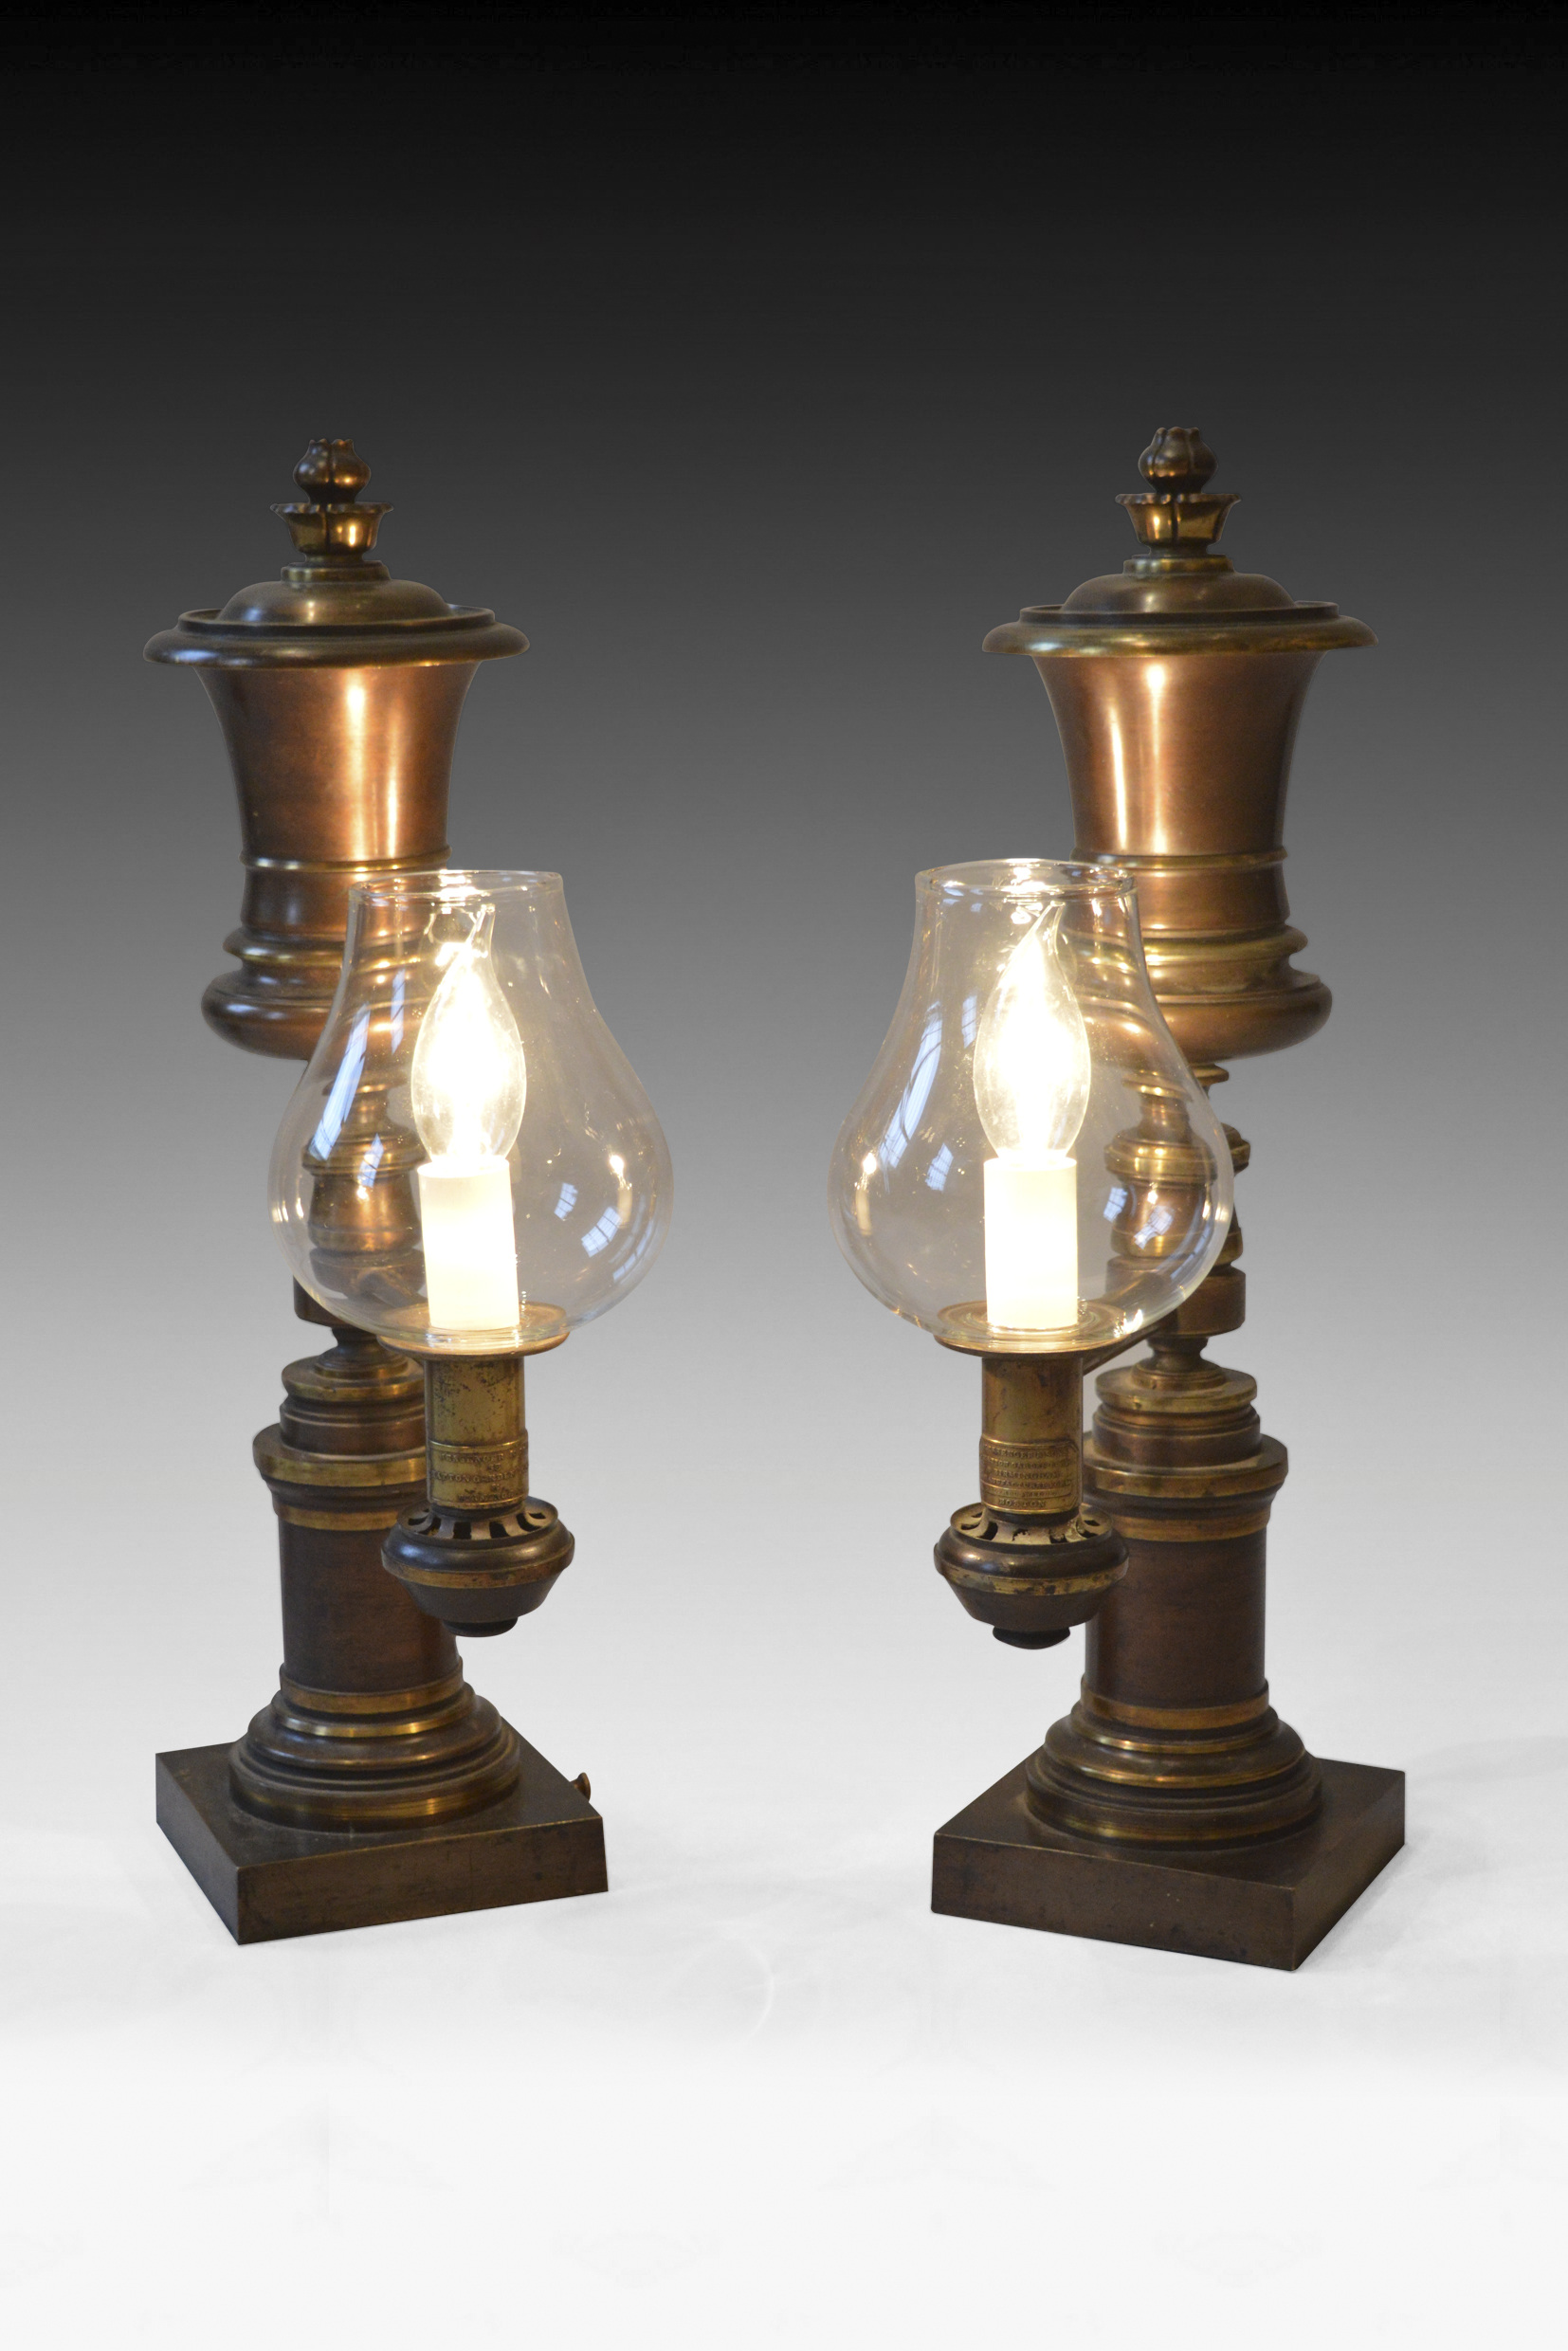 ANTIQUE PAIR OF PATINATED BRONZE ARGAND LAMPS BY MESSENGERS